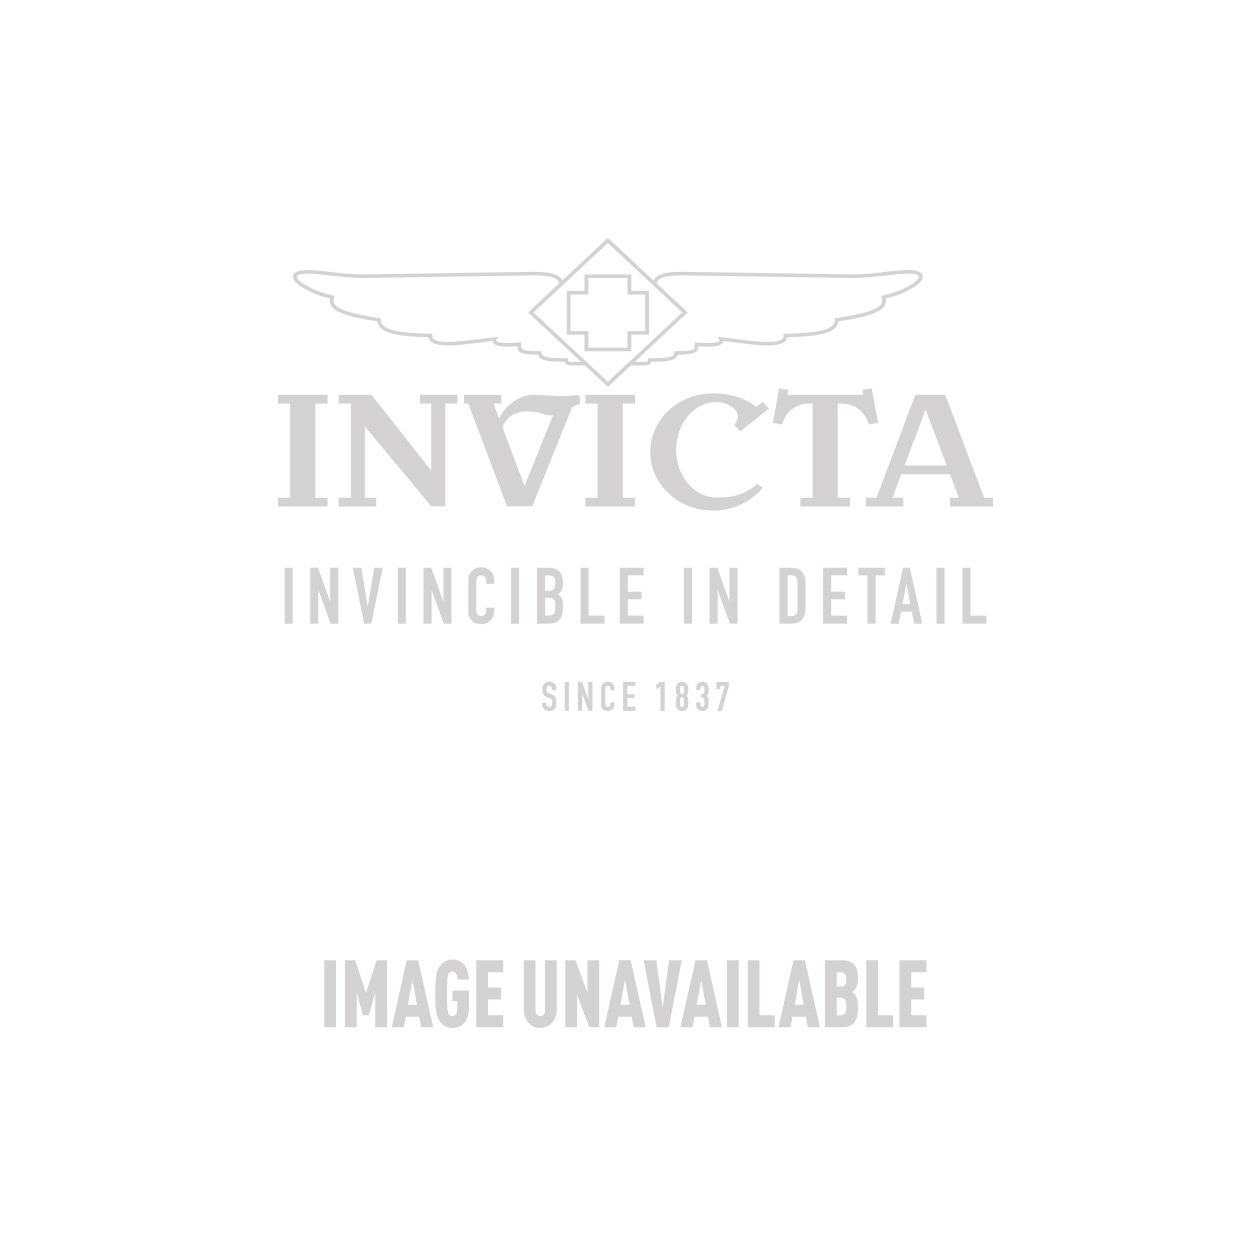 Invicta I-Force Quartz Watch - Stainless Steel case with Black tone Rifle band - Model 1513